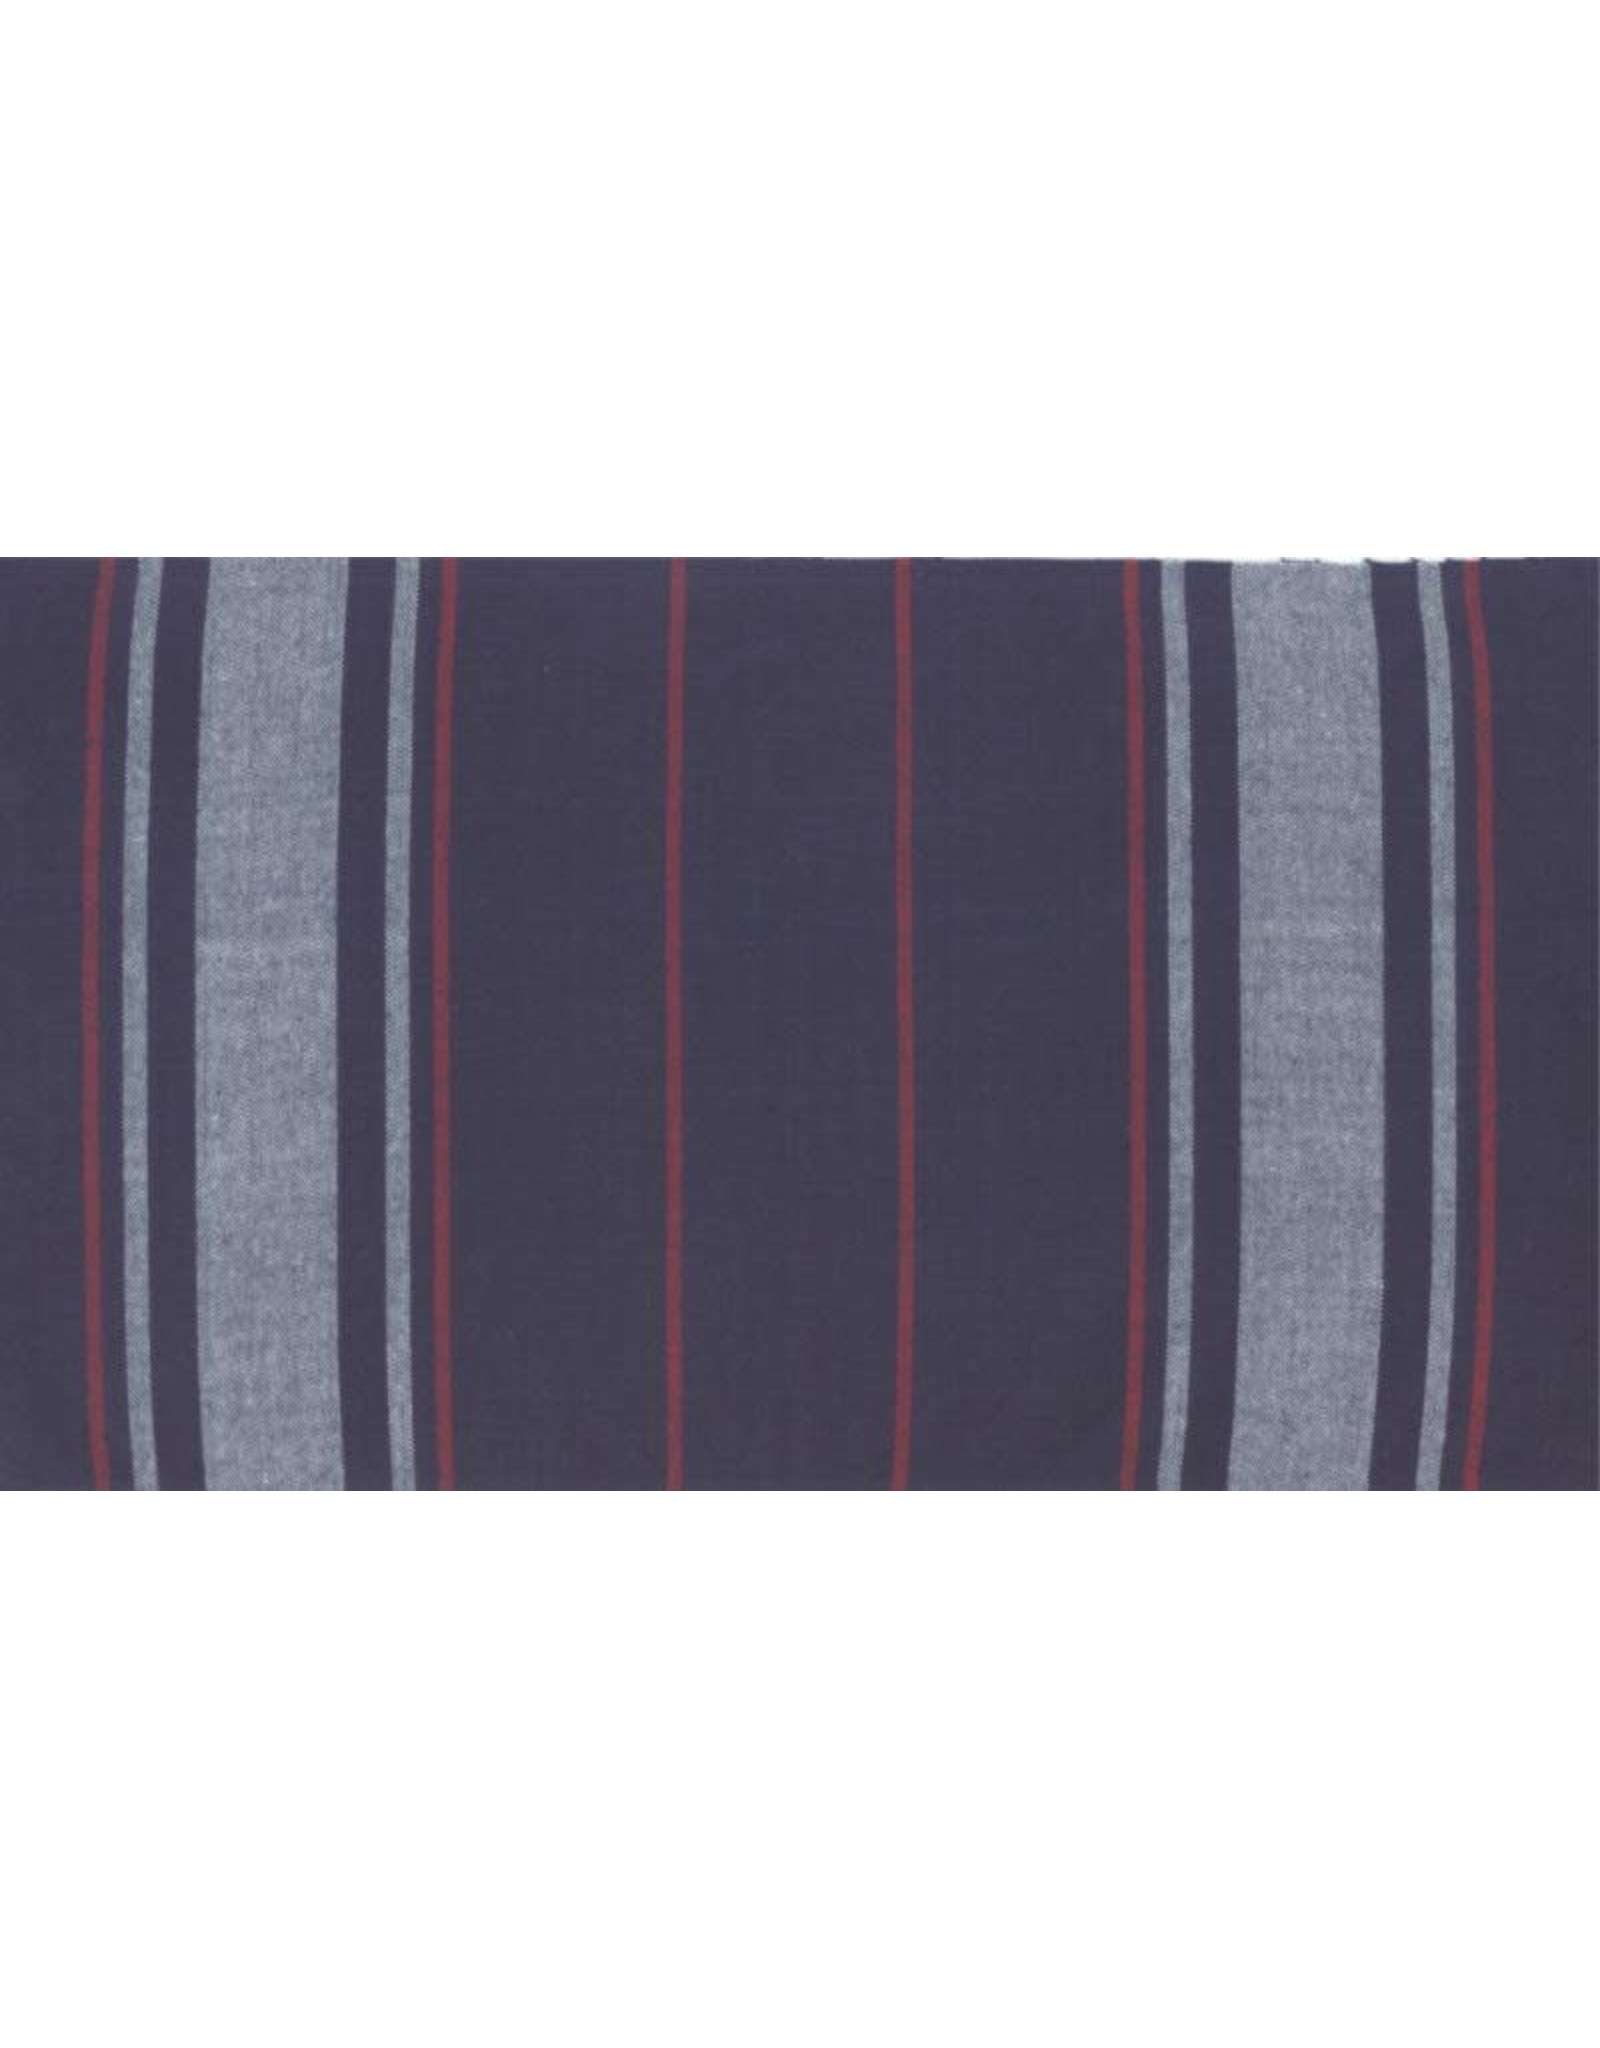 """Moda Woven Toweling, 18"""", Rock Pool Toweling in Deep  992 264, Sold by the Yard"""